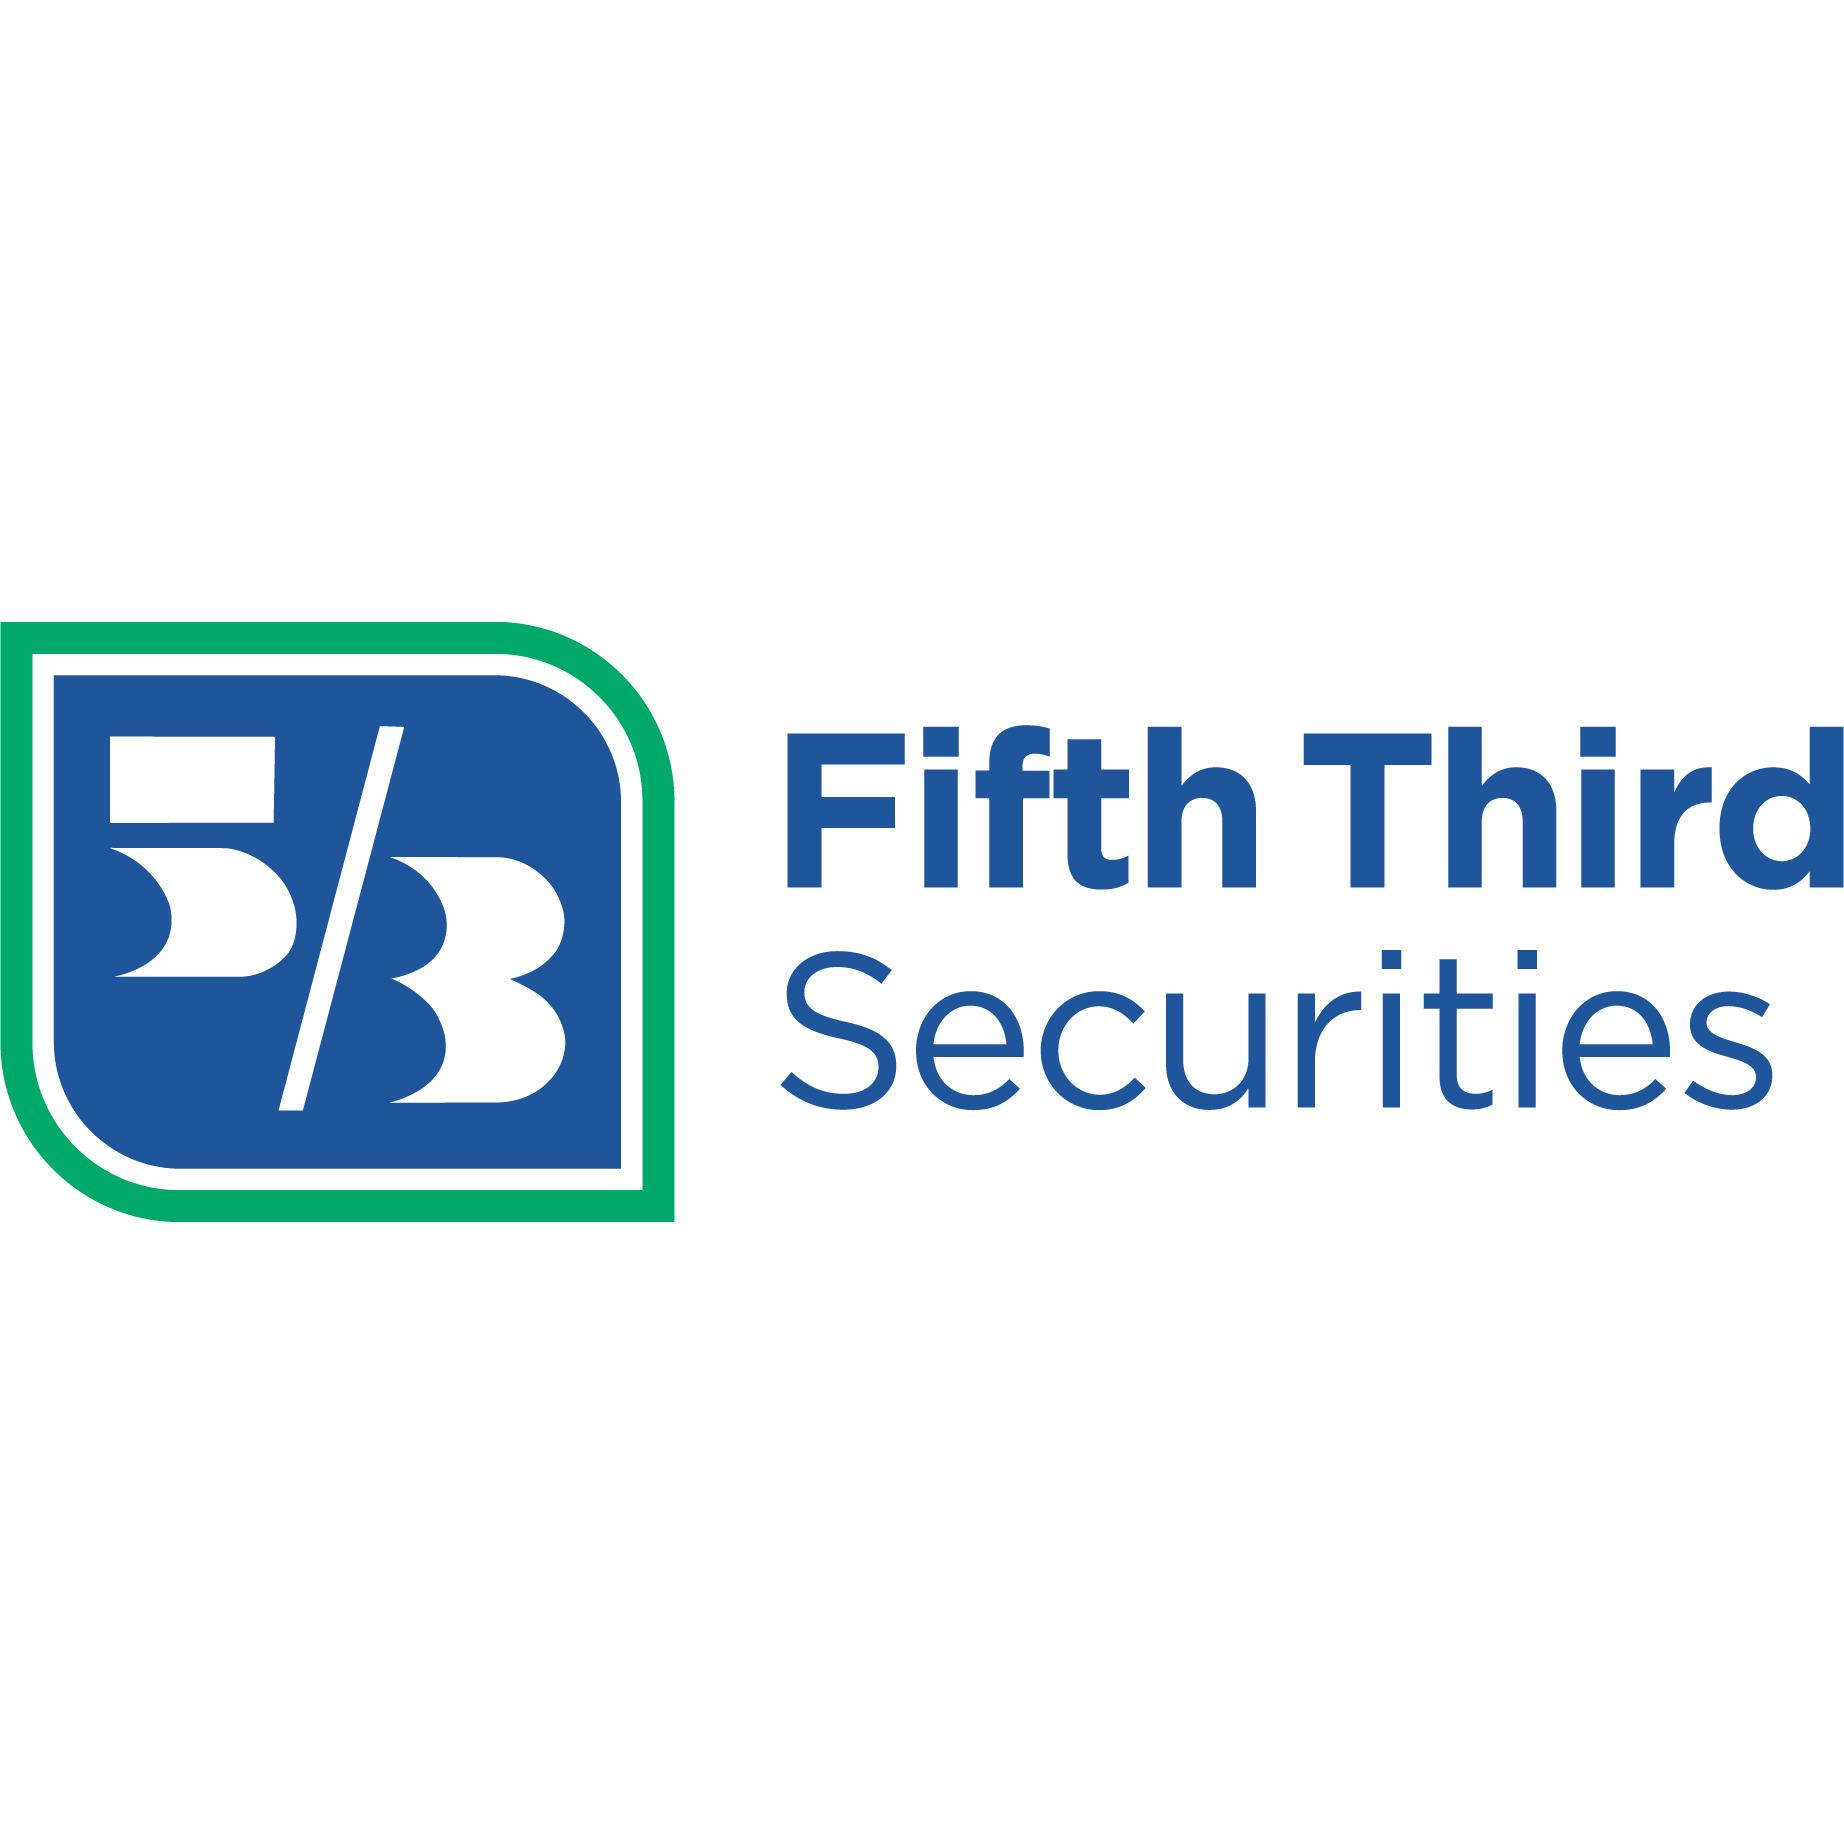 Fifth Third Securities - Bradley Recknagel